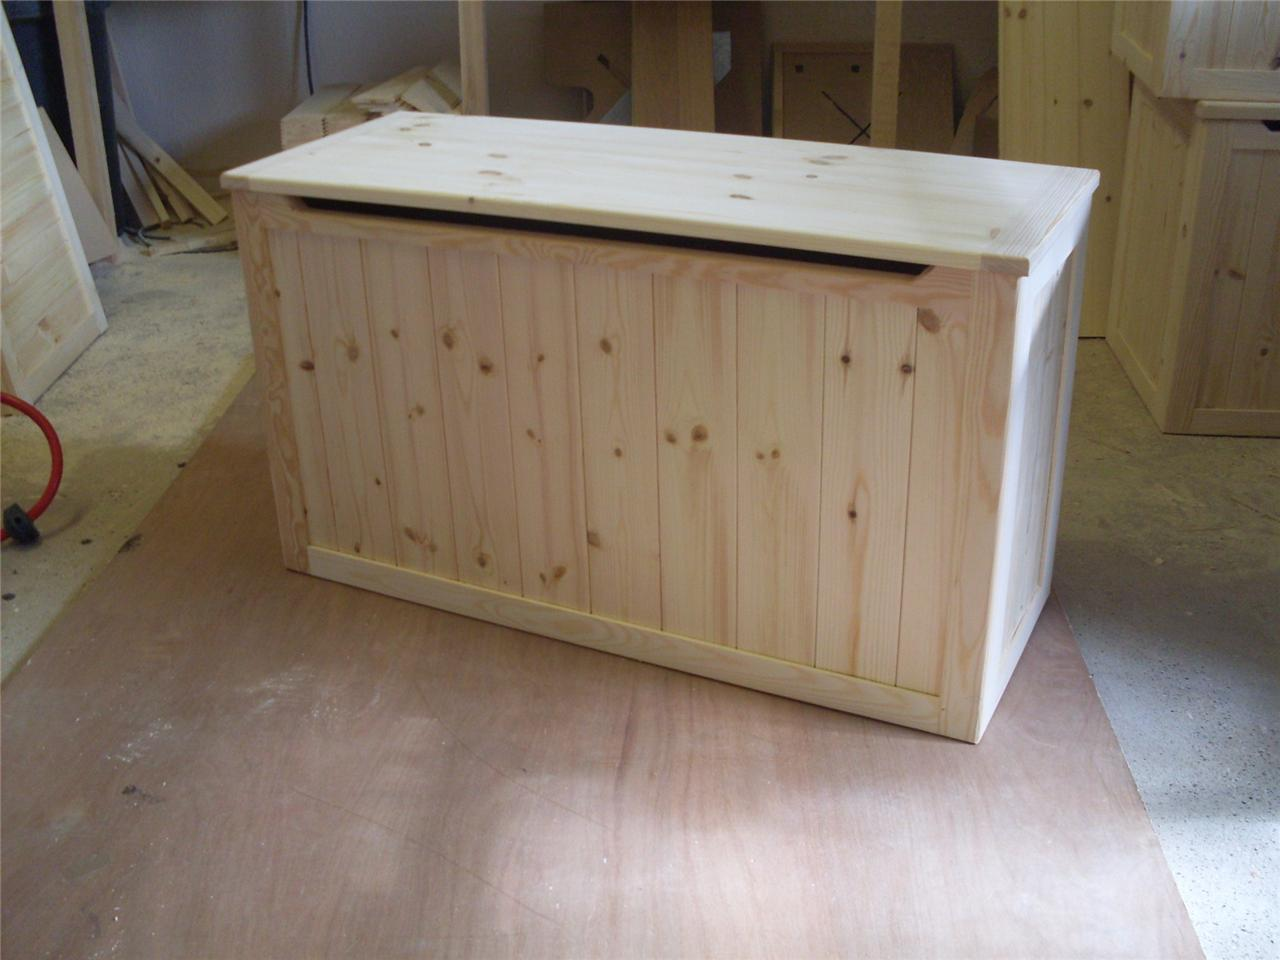 Making Wood Toy Boxes Woodworking Plans For Table Lamps